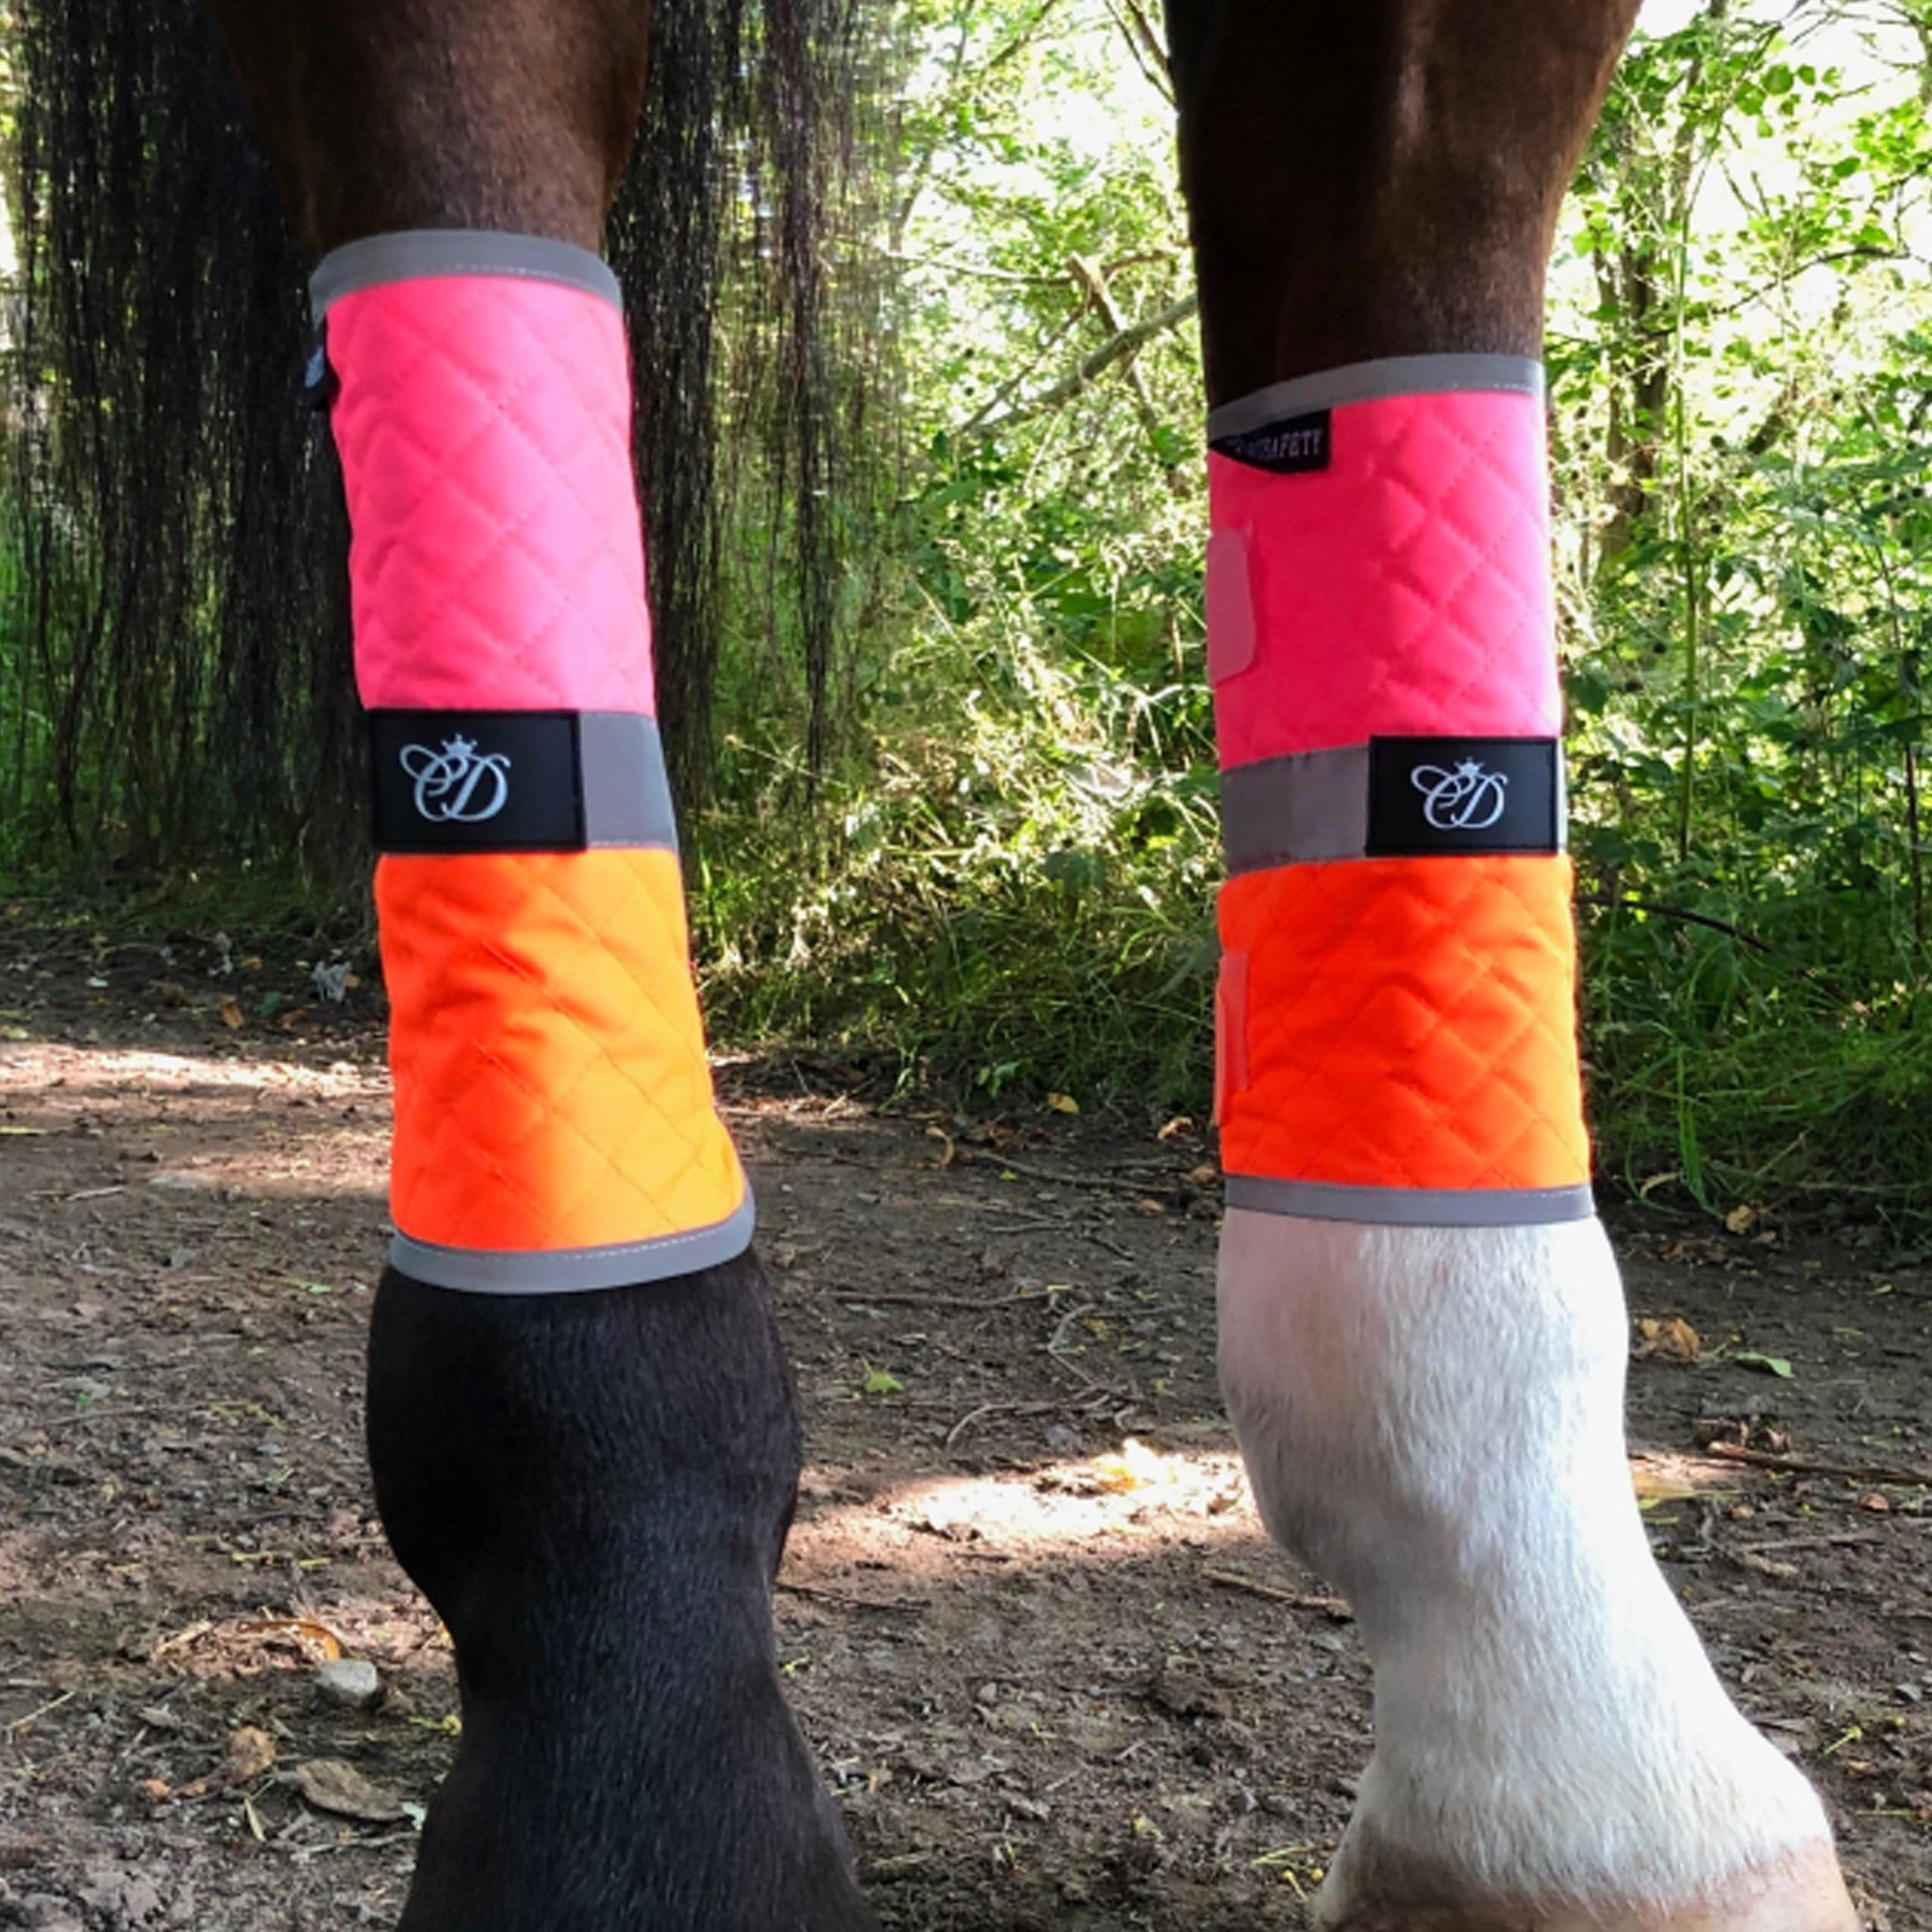 Equisafety Charlotte Dujardin Multi-Coloured Leg Boots CDMLPOP Pink and Orange Pair On Horse